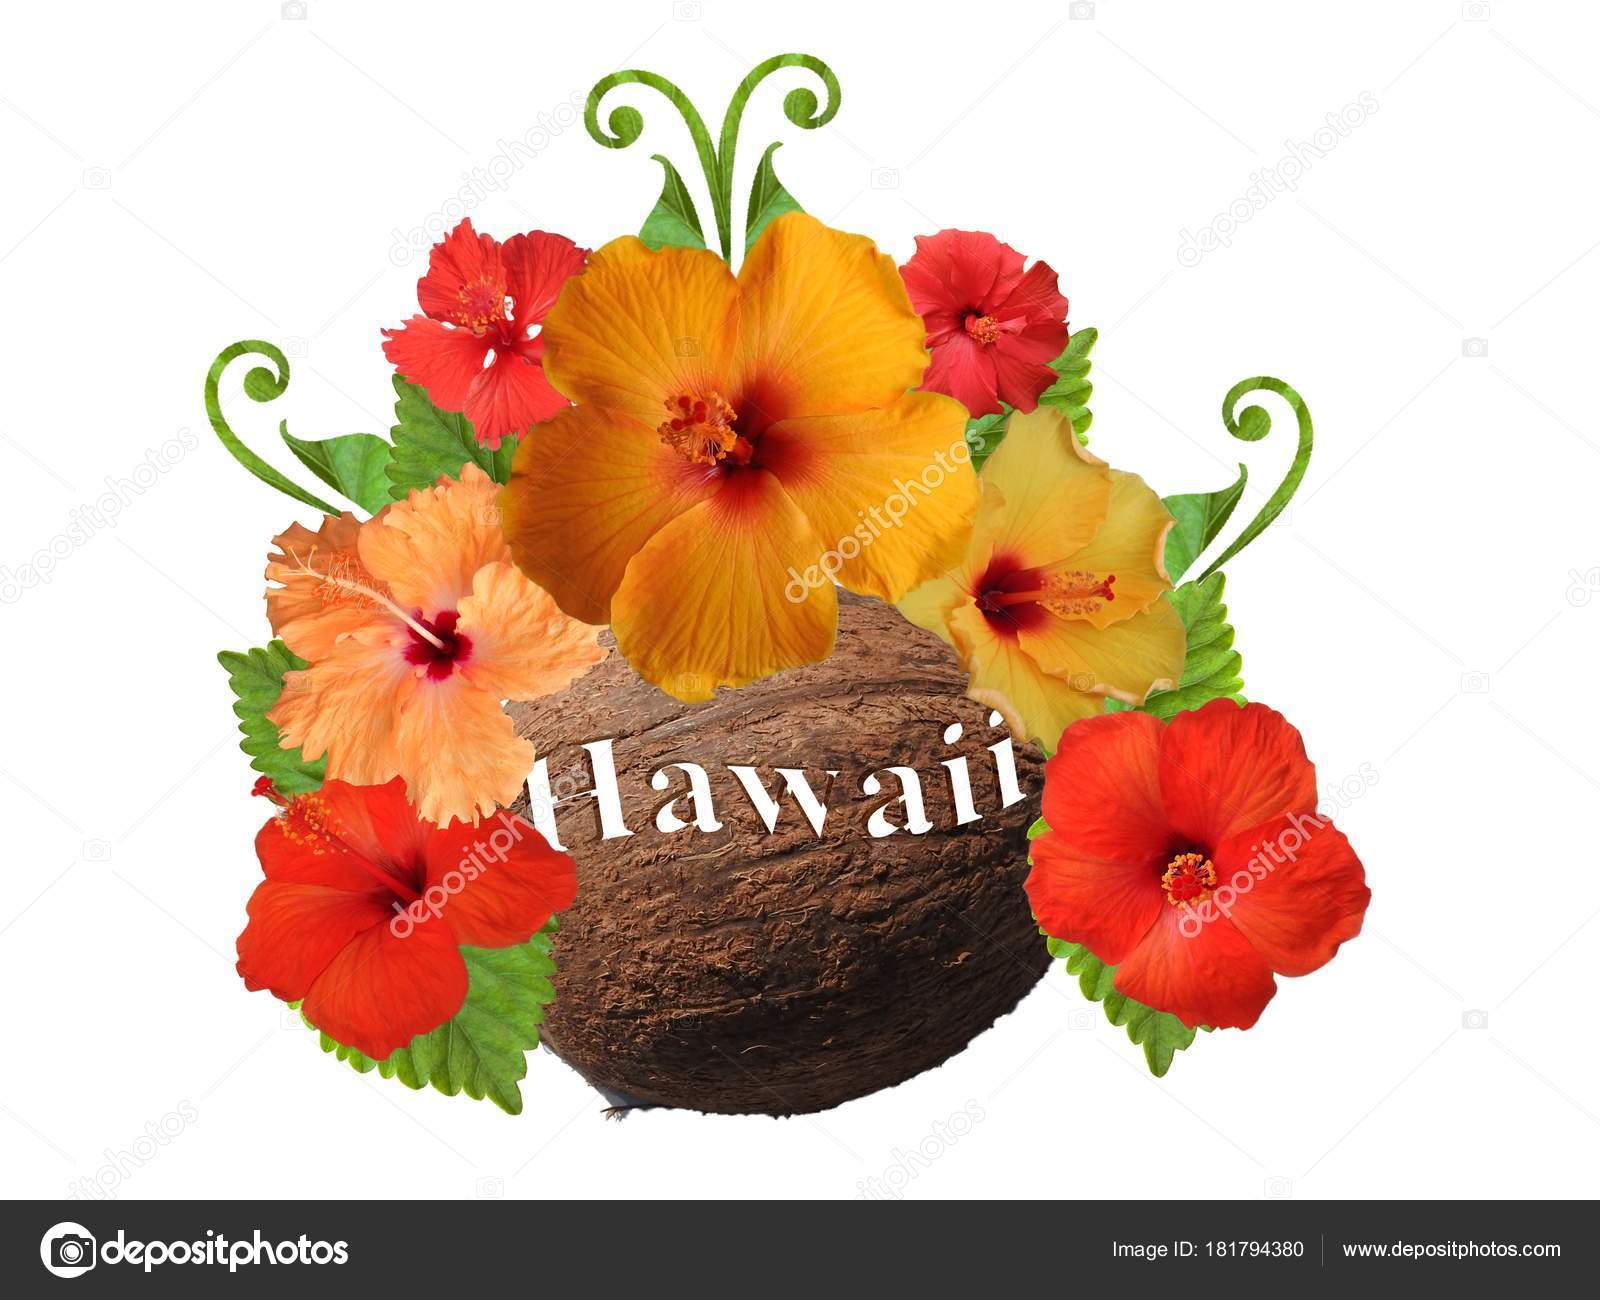 Hibiscus flowers different colors stock photo schwerin 181794380 hibiscus flowers different colors stock photo izmirmasajfo